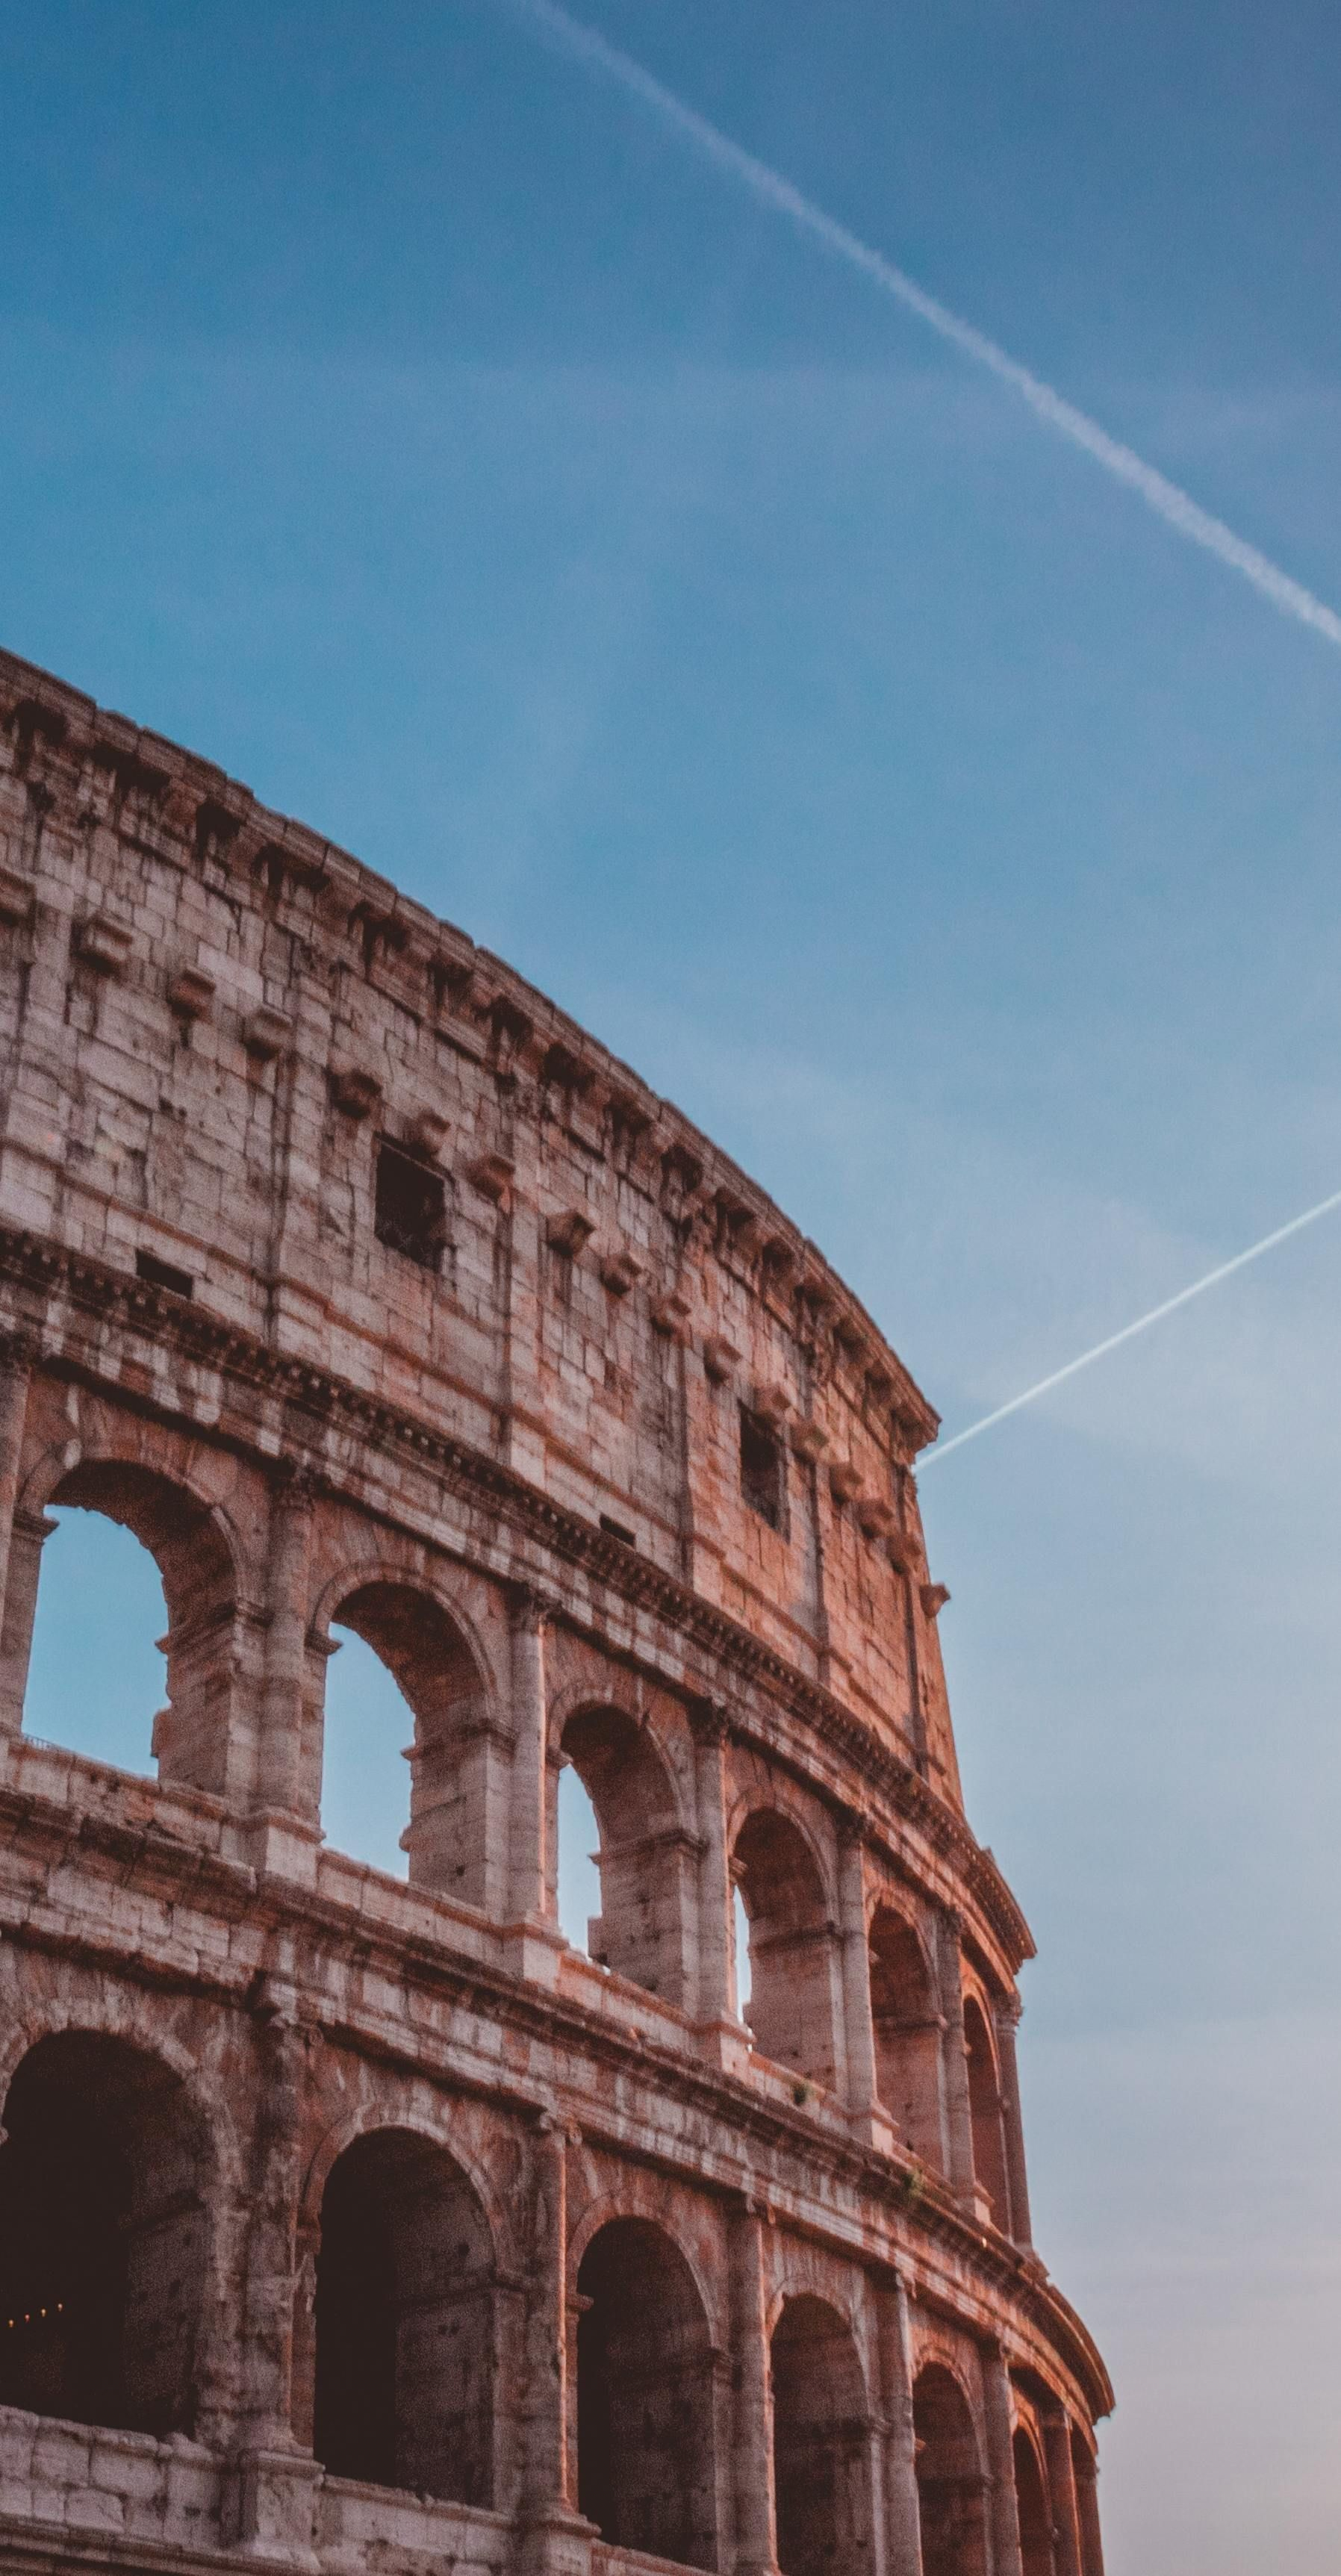 Colosseum, Rome, Italy. Aesthetic wallpapers, Pictures